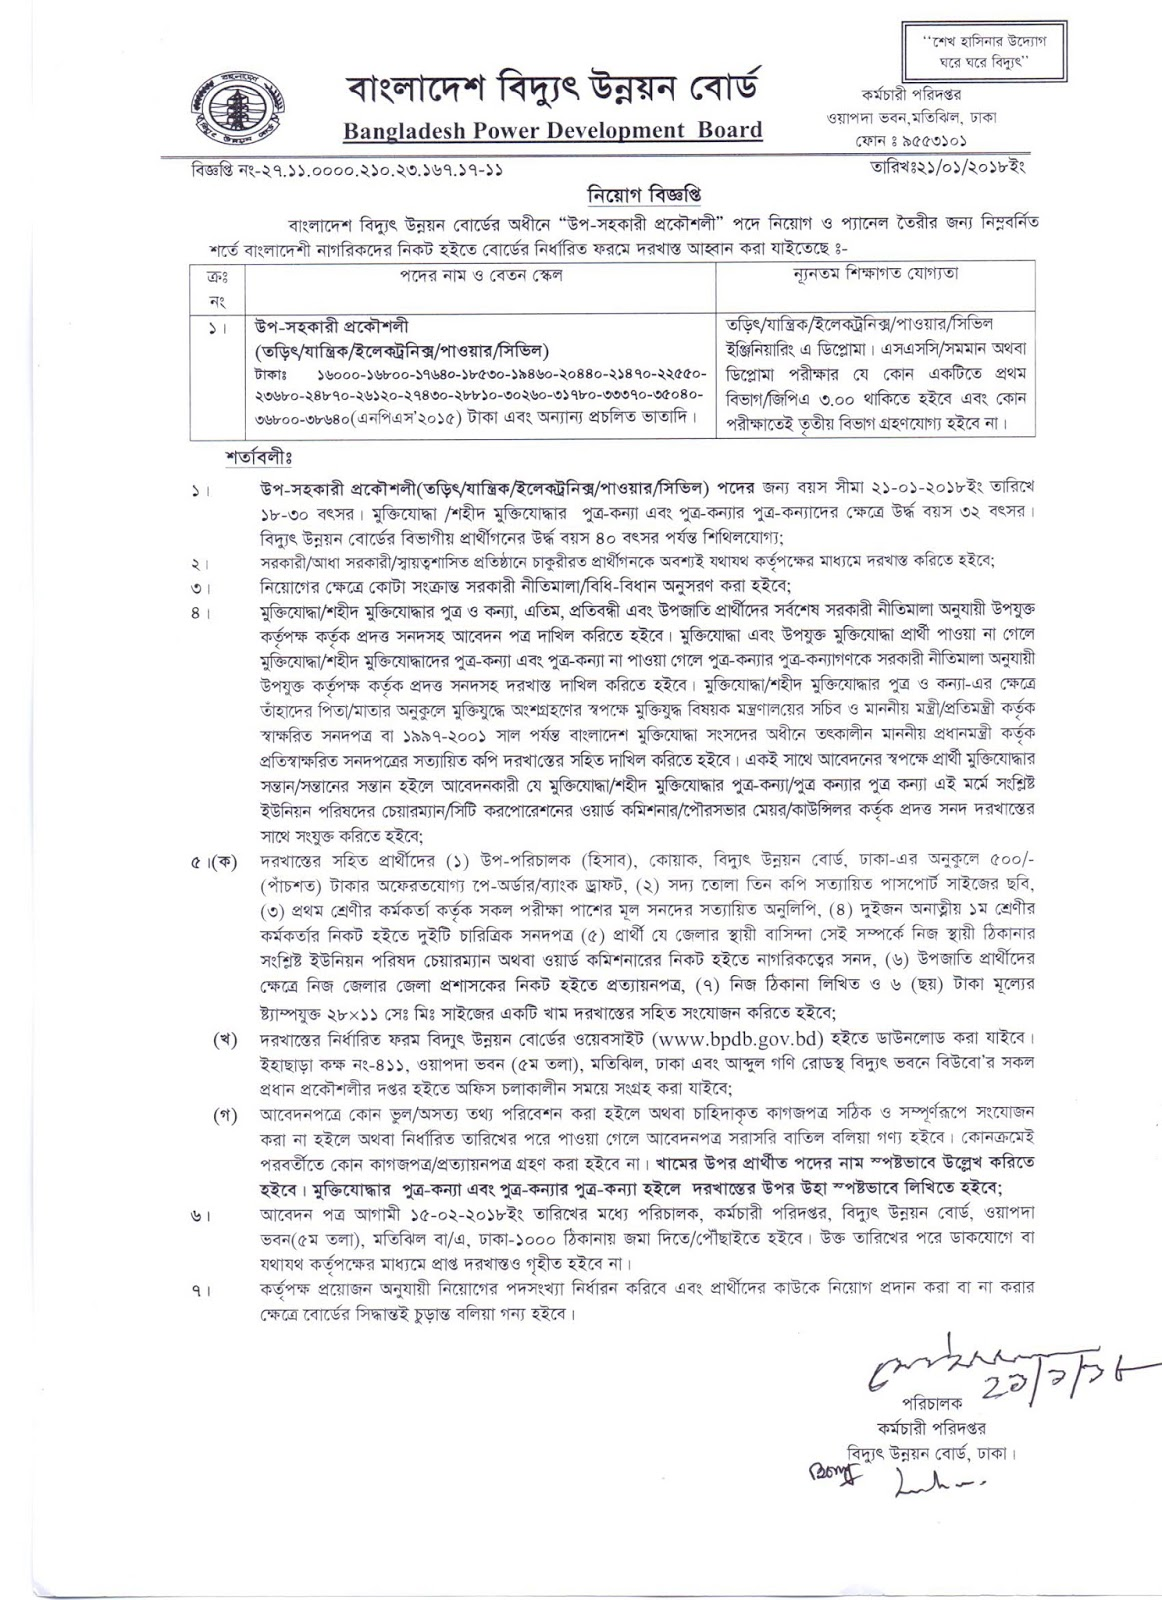 BPDB - Bangladesh Power Development Board Job Circular 2018